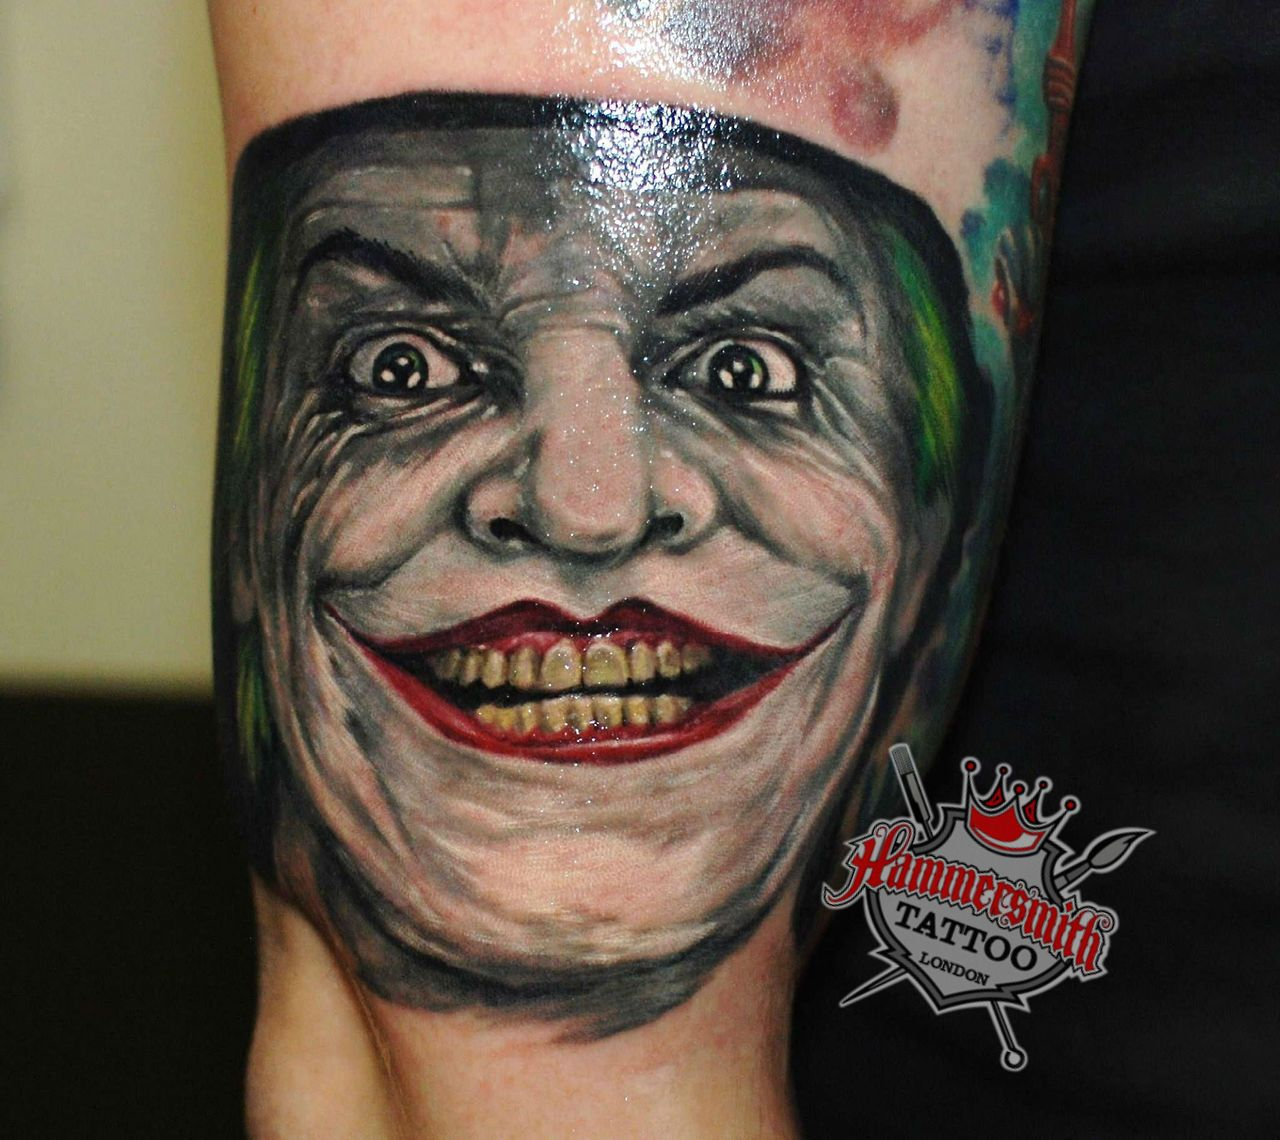 Jack Nicholsons Portrayal Of The Joker This Time From Ideas And Designs